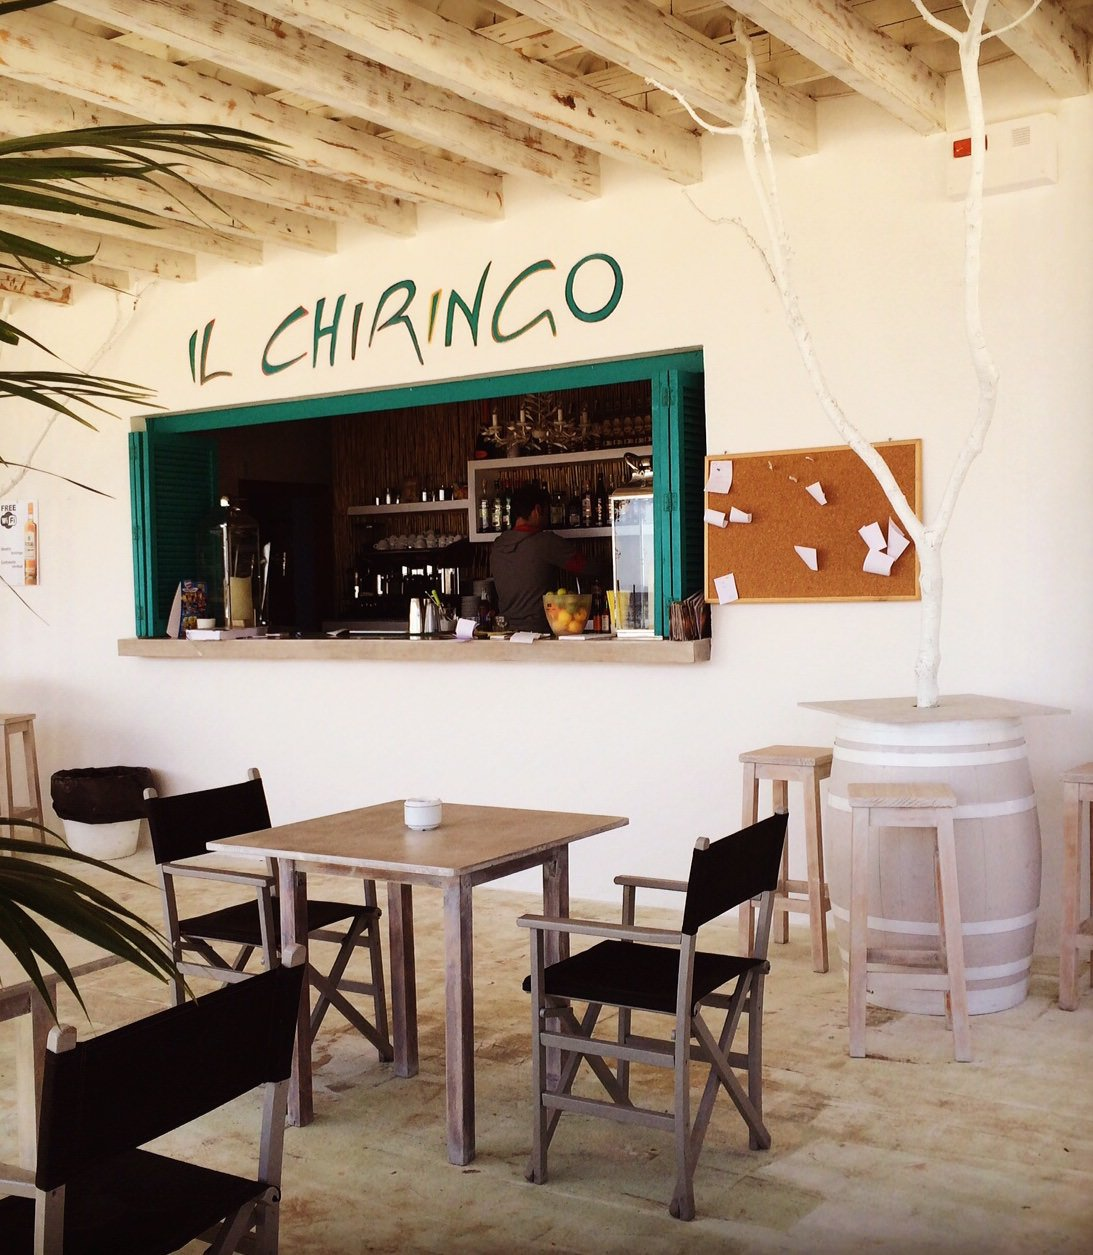 Beach bar with cult status – Il Chiringo in Palmanova